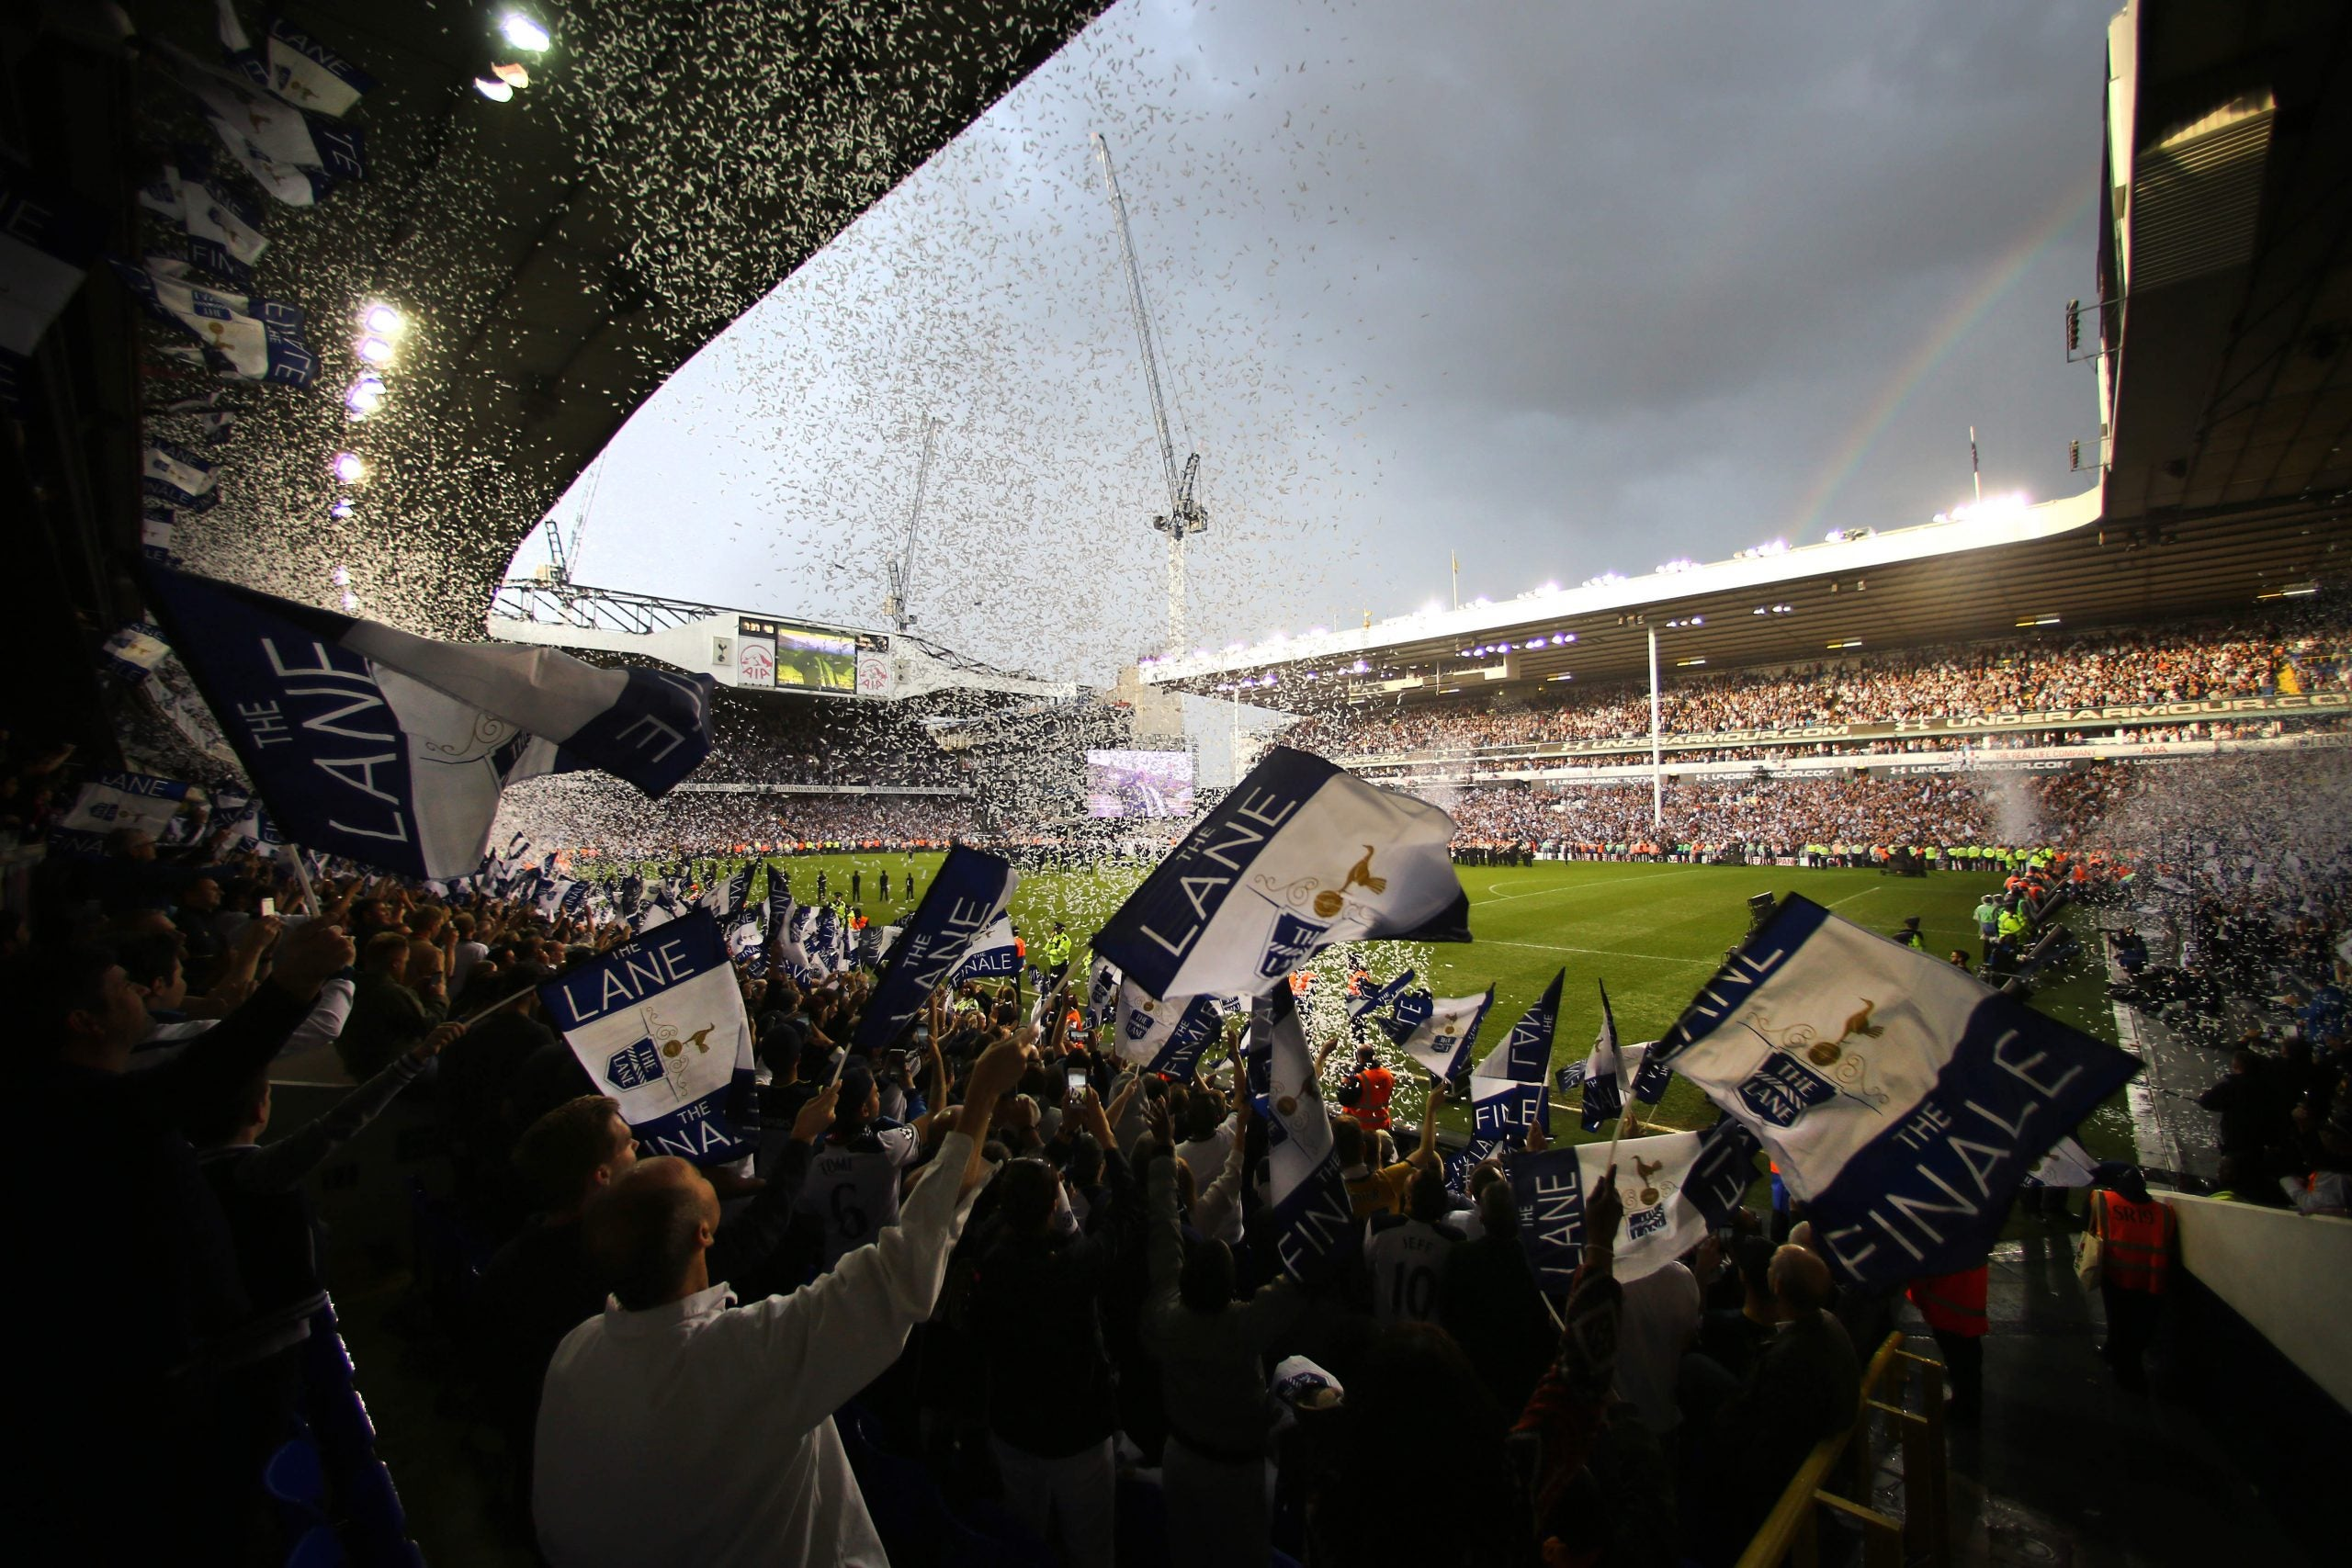 Spurs' last game at White Hart Lane ... the crowd never stopped singing